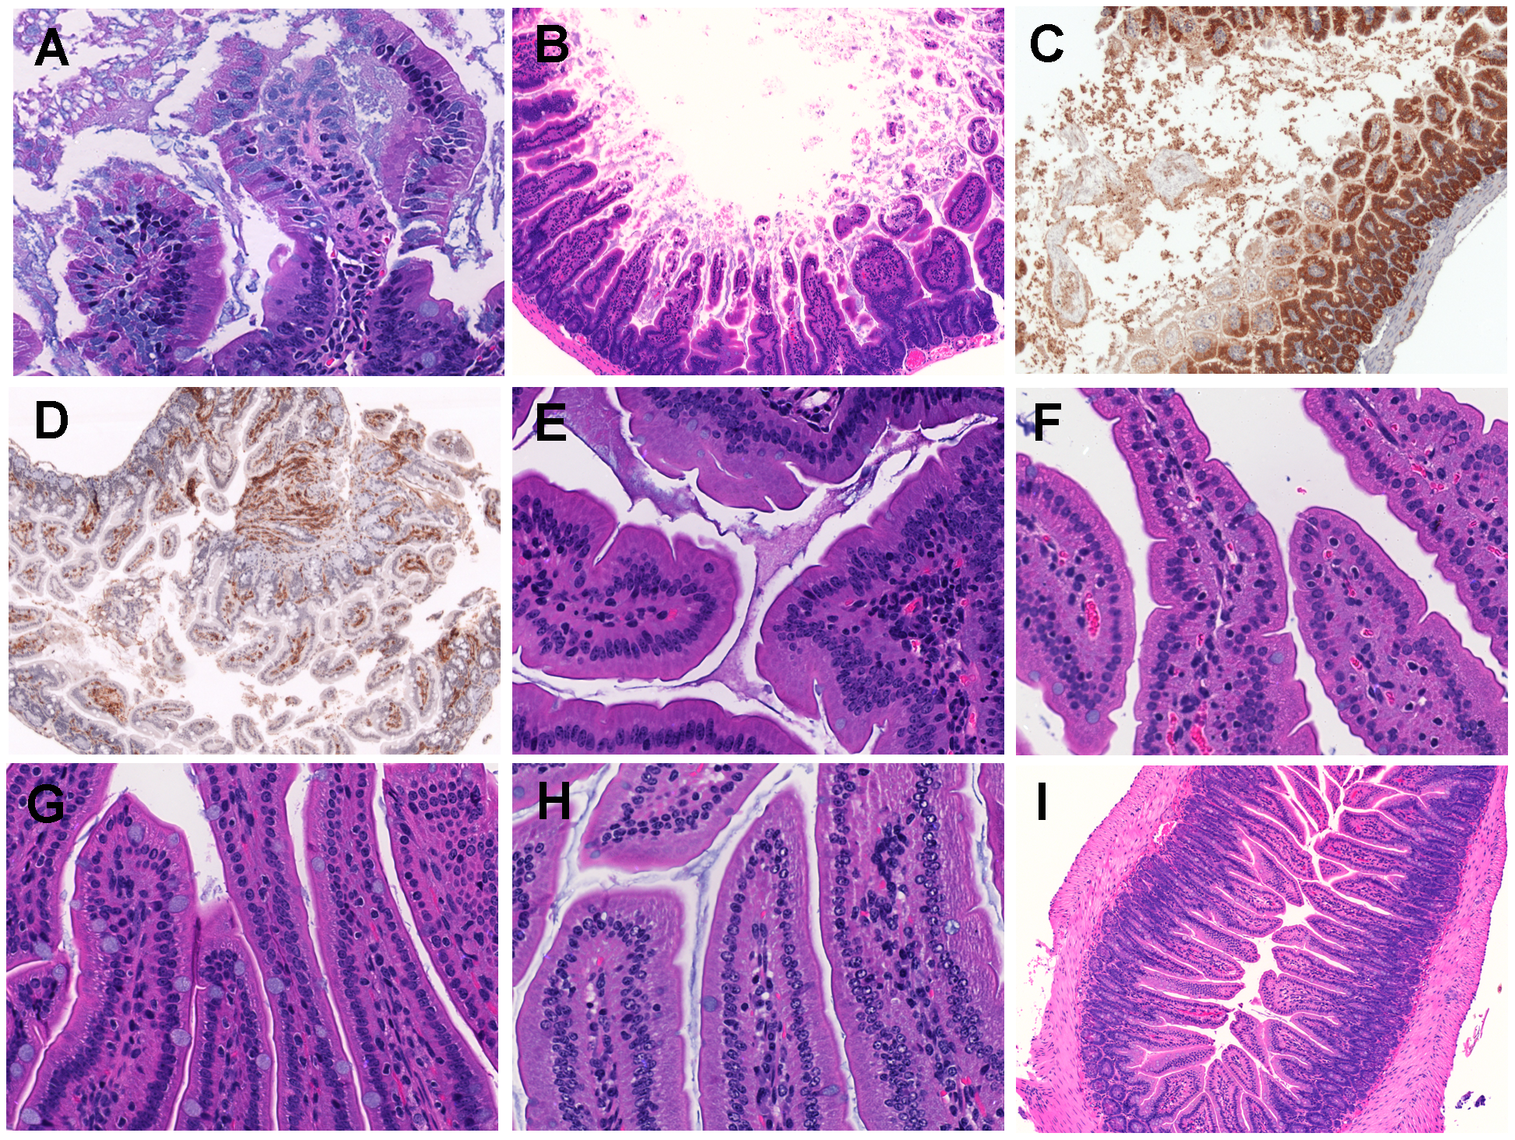 Histopathological examination of mice small intestine inoculated with <i>V. vulnificus</i> strains.